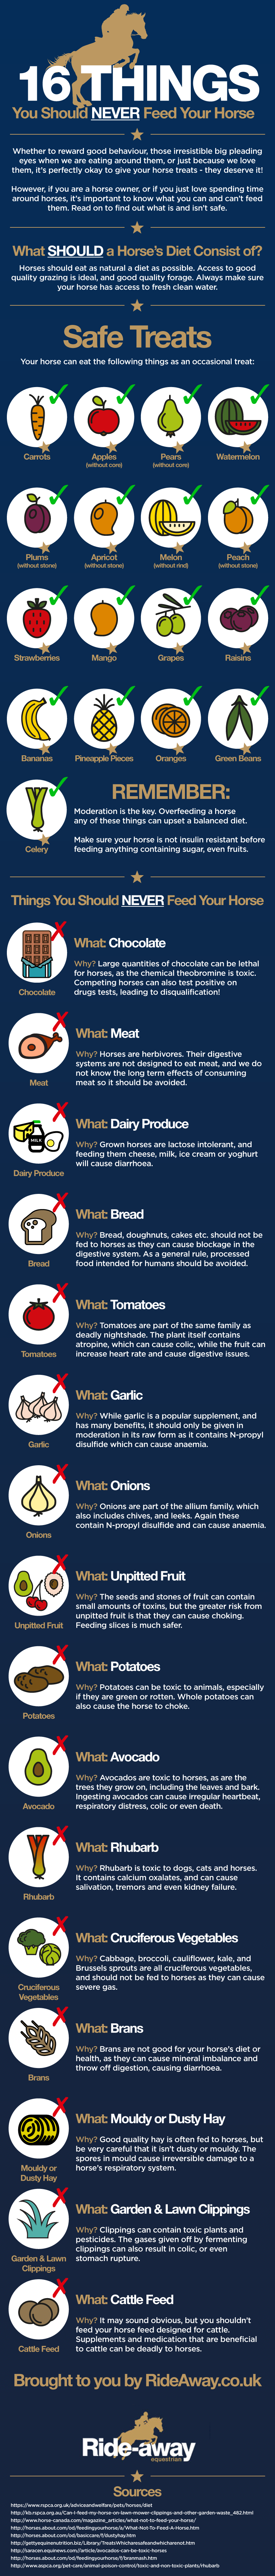 16 Things You Should Never Feed Your Horse — Infographic